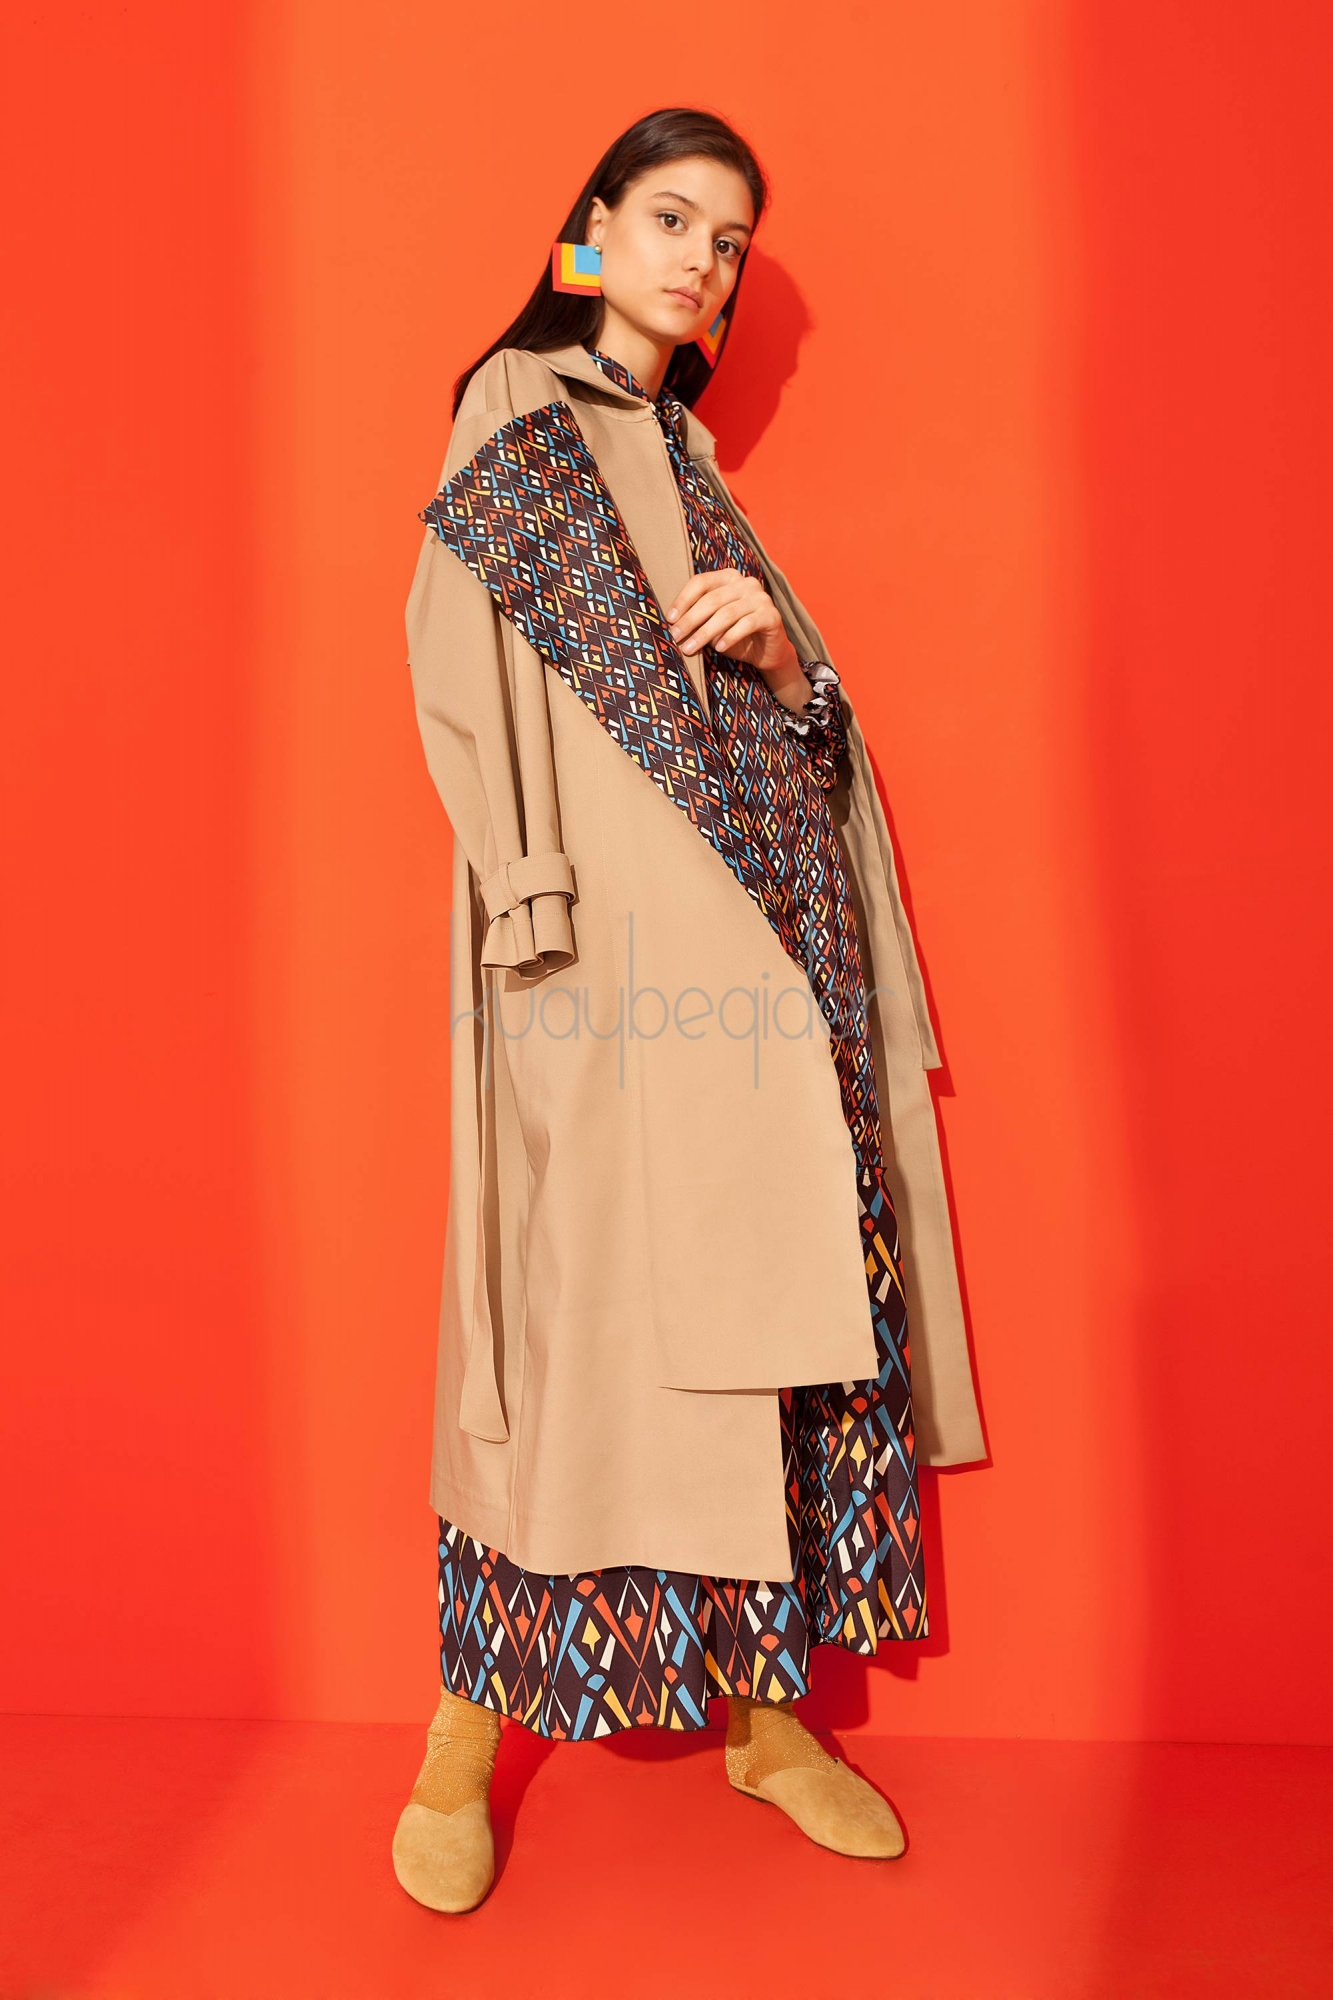 Kuaybe Gider - 7062 Camel Dignita' Long Trench